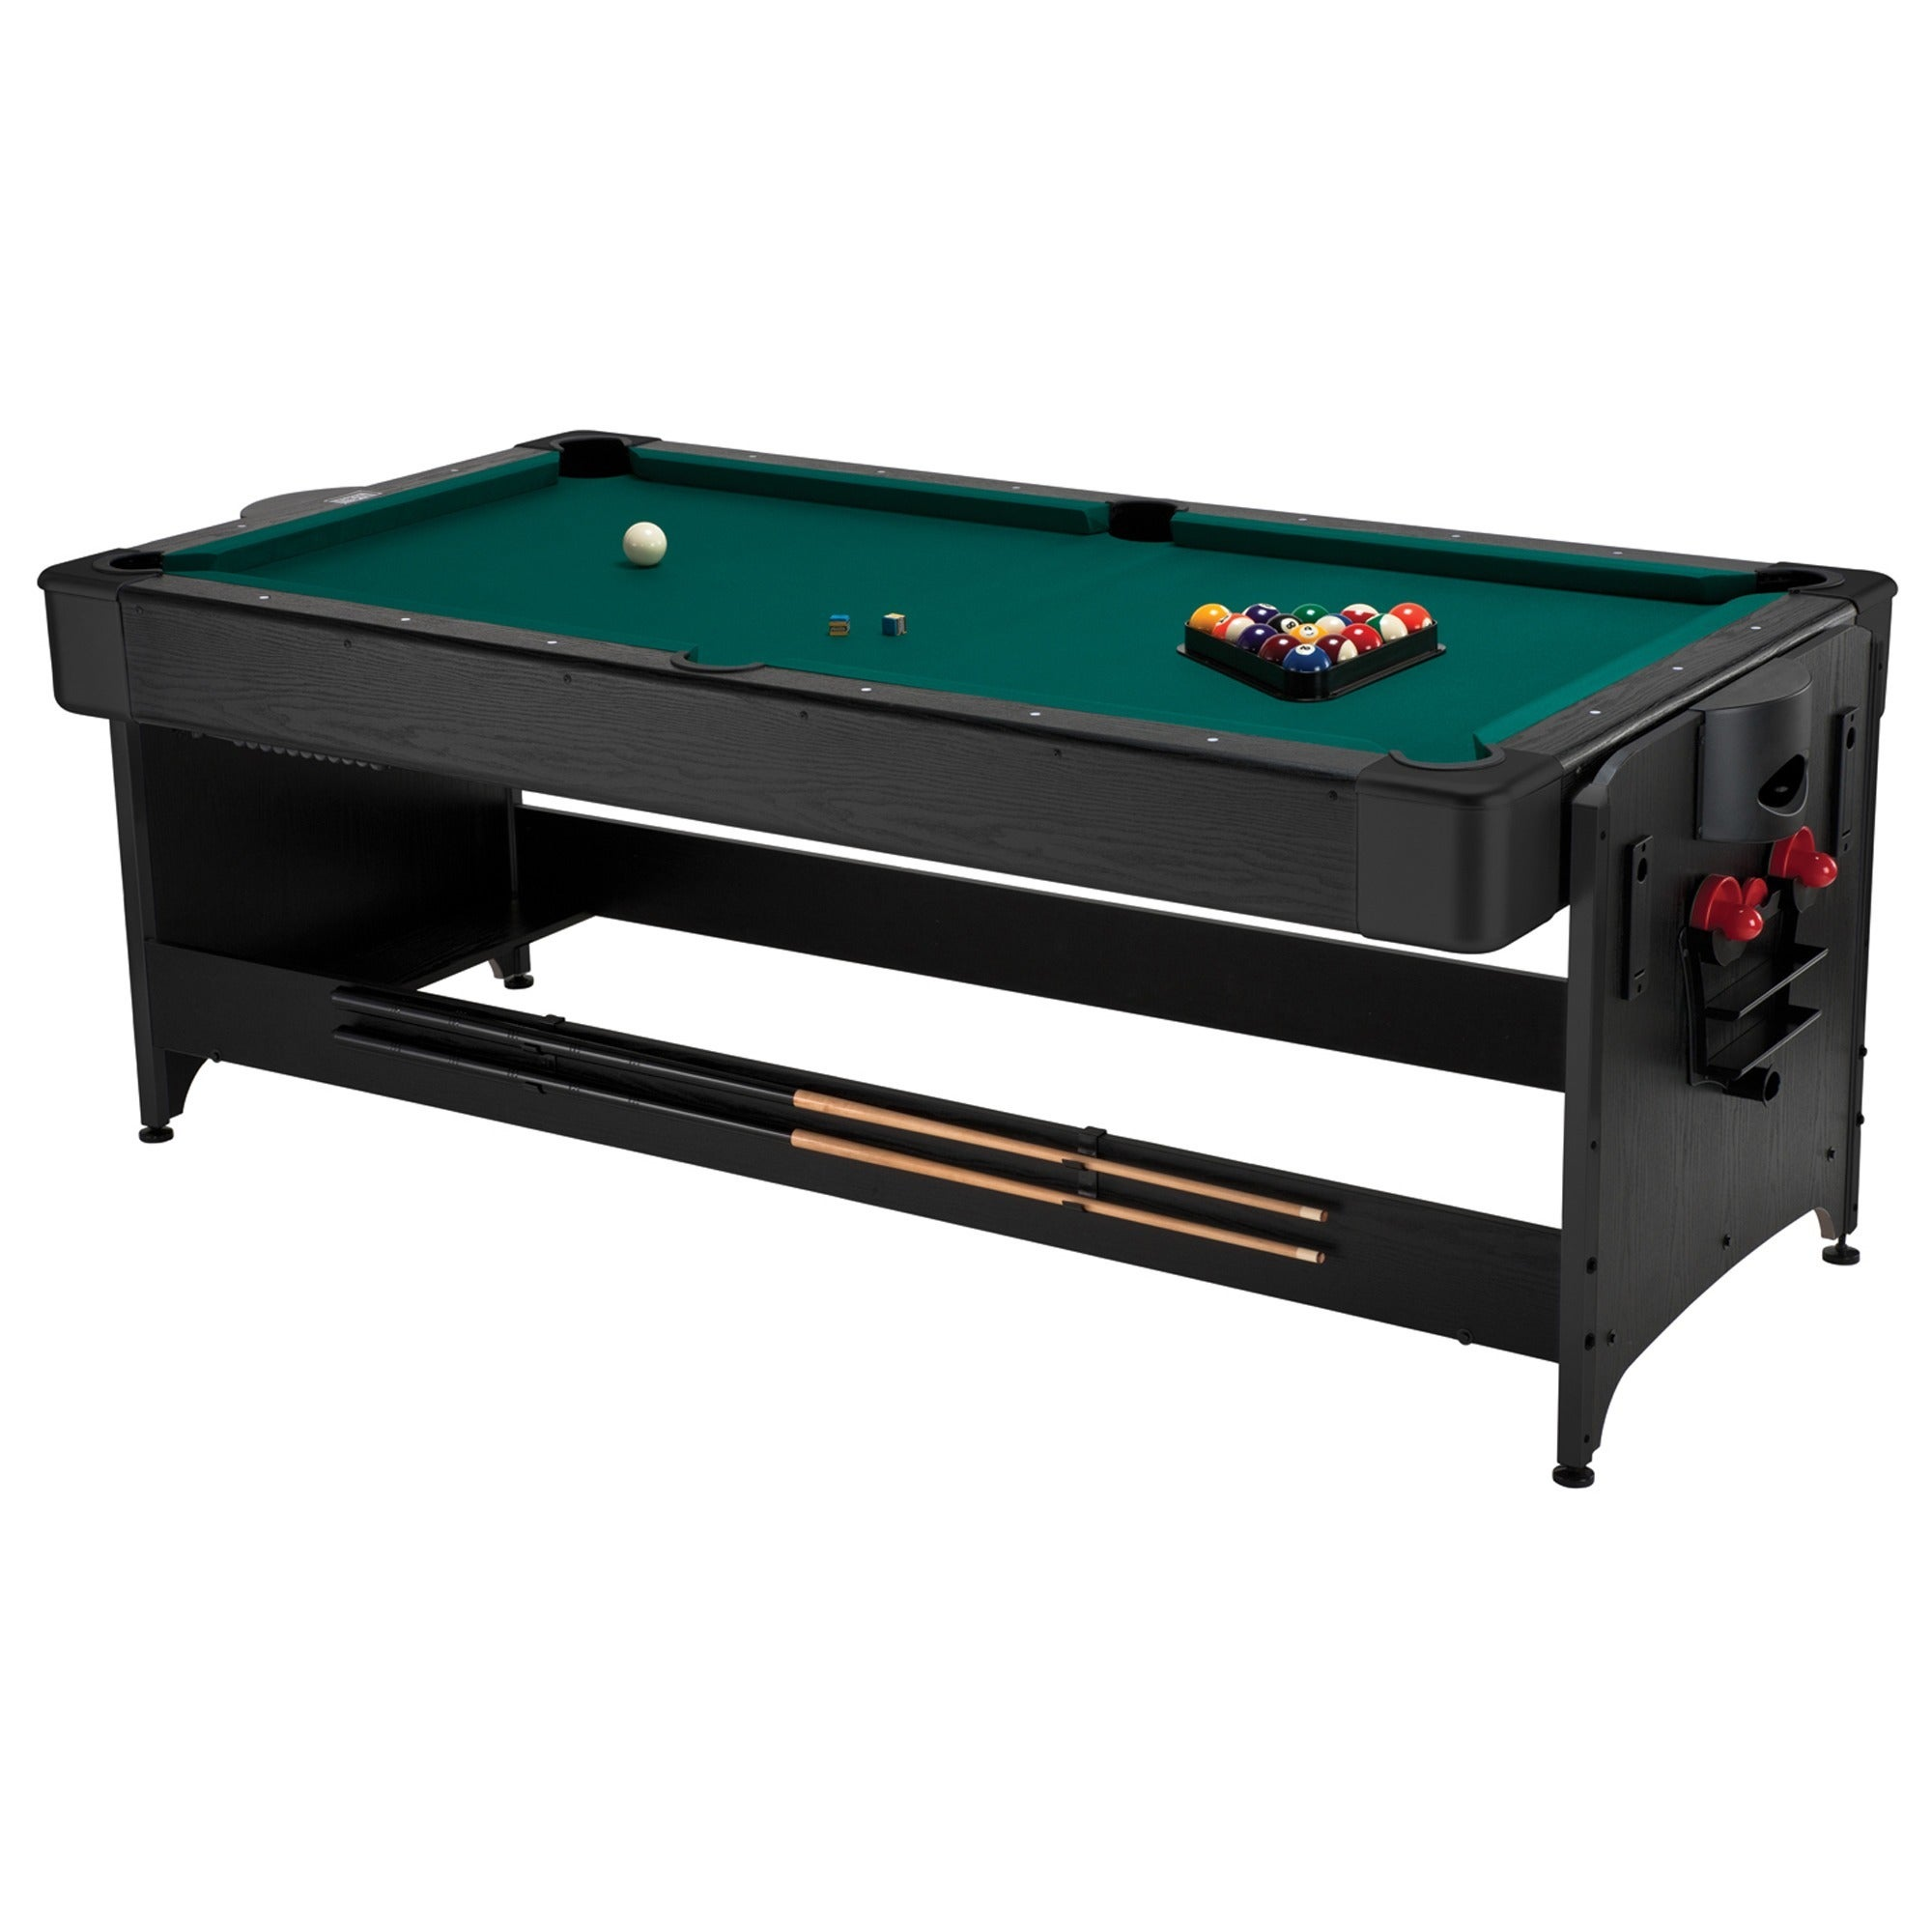 Shop Fat Cat 64 1010 Original 2 In 1 7 Foot Pockey Game Table (Billiards  And Air Hockey)   Black   Free Shipping Today   Overstock.com   11354004